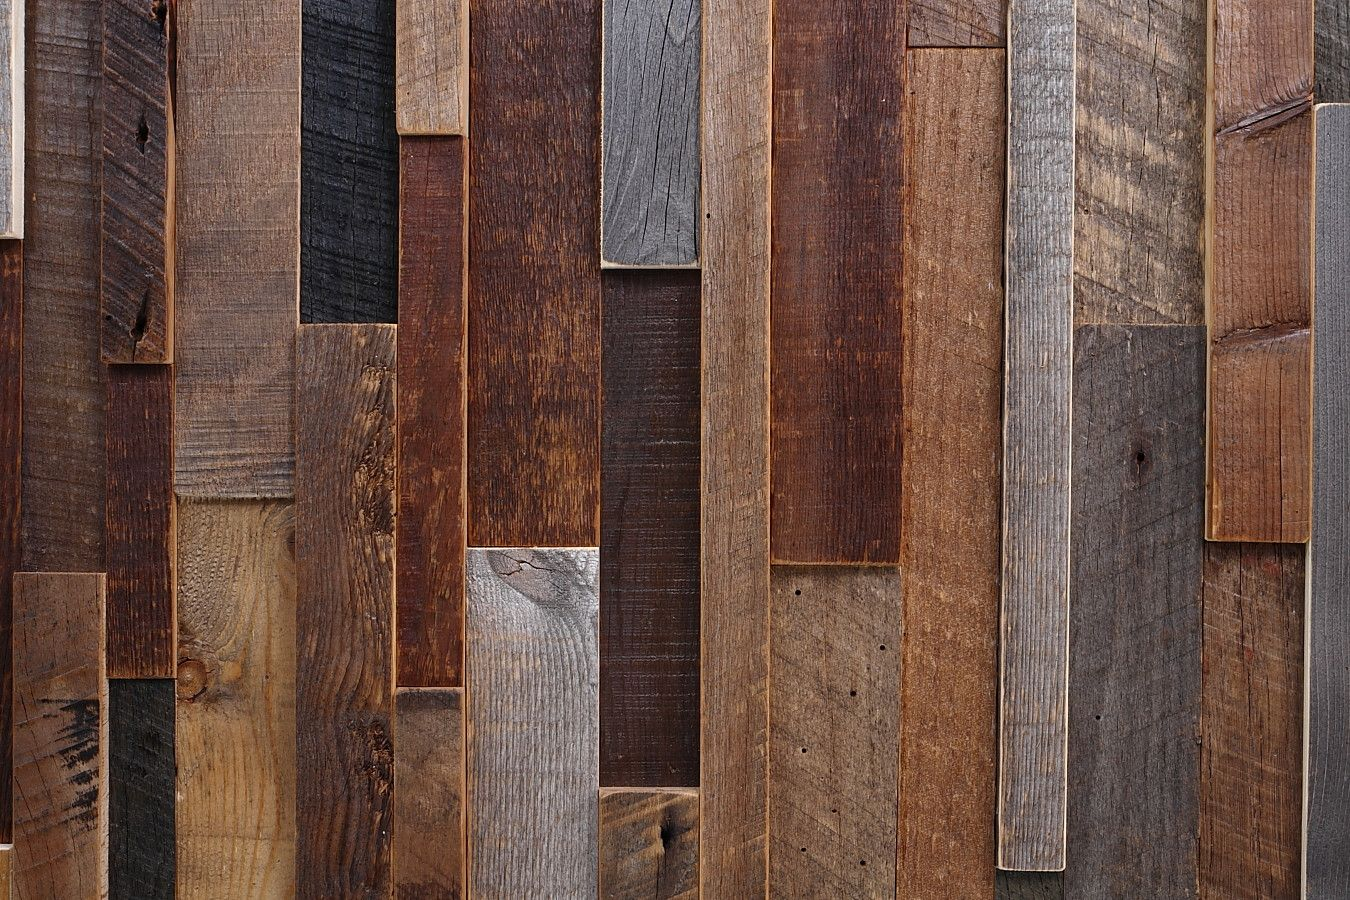 walls made out of reclaimed wood